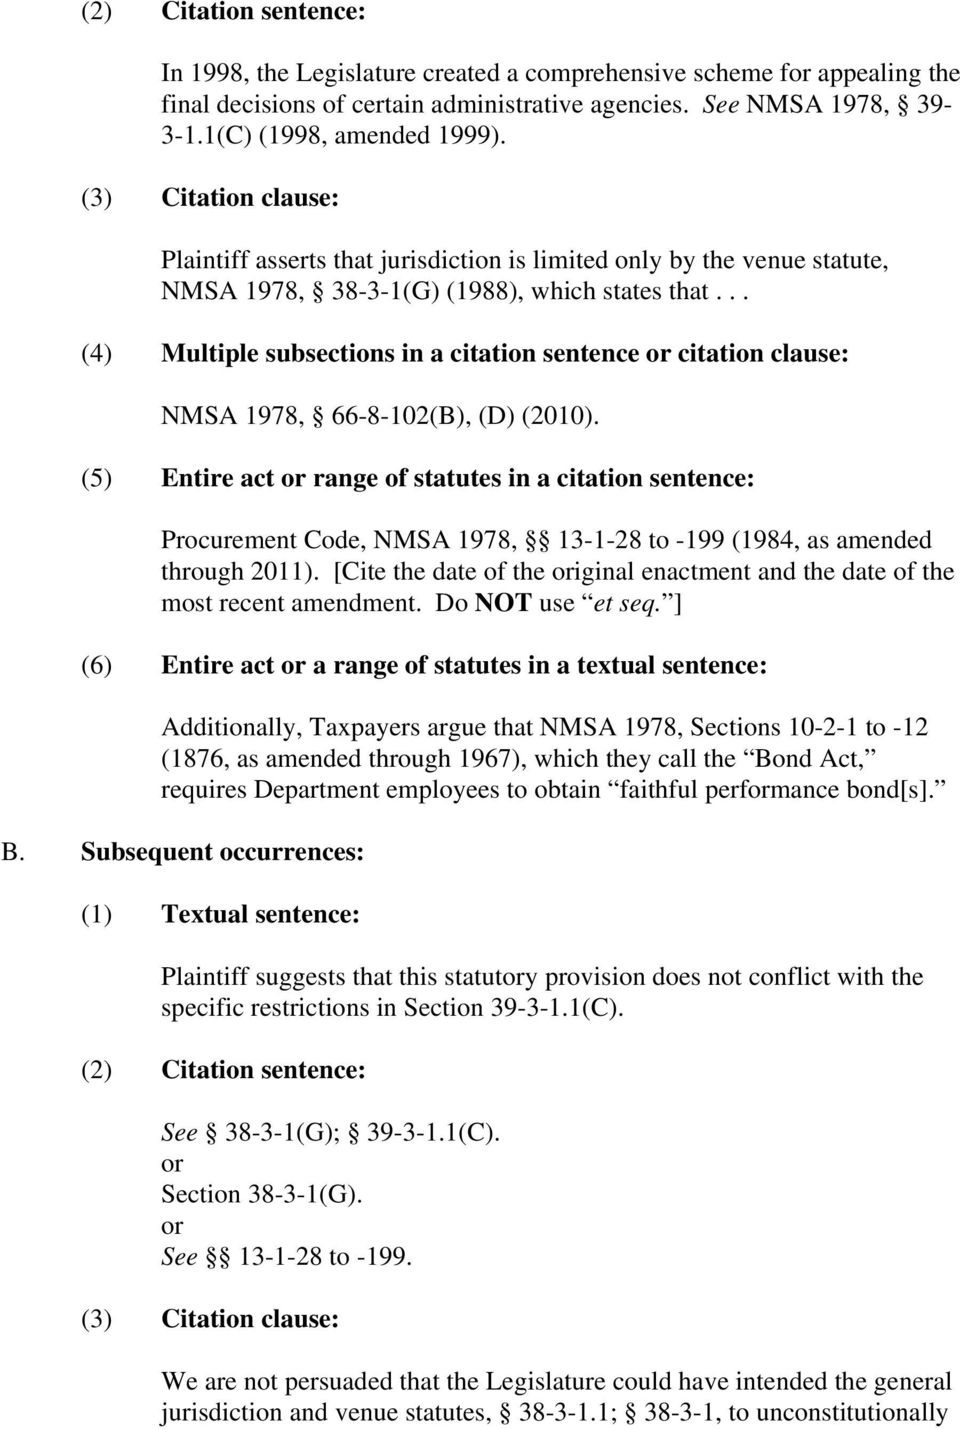 .. (4) Multiple subsections in a citation sentence citation clause: NMSA 1978, 66-8-102(B), (D) (2010).